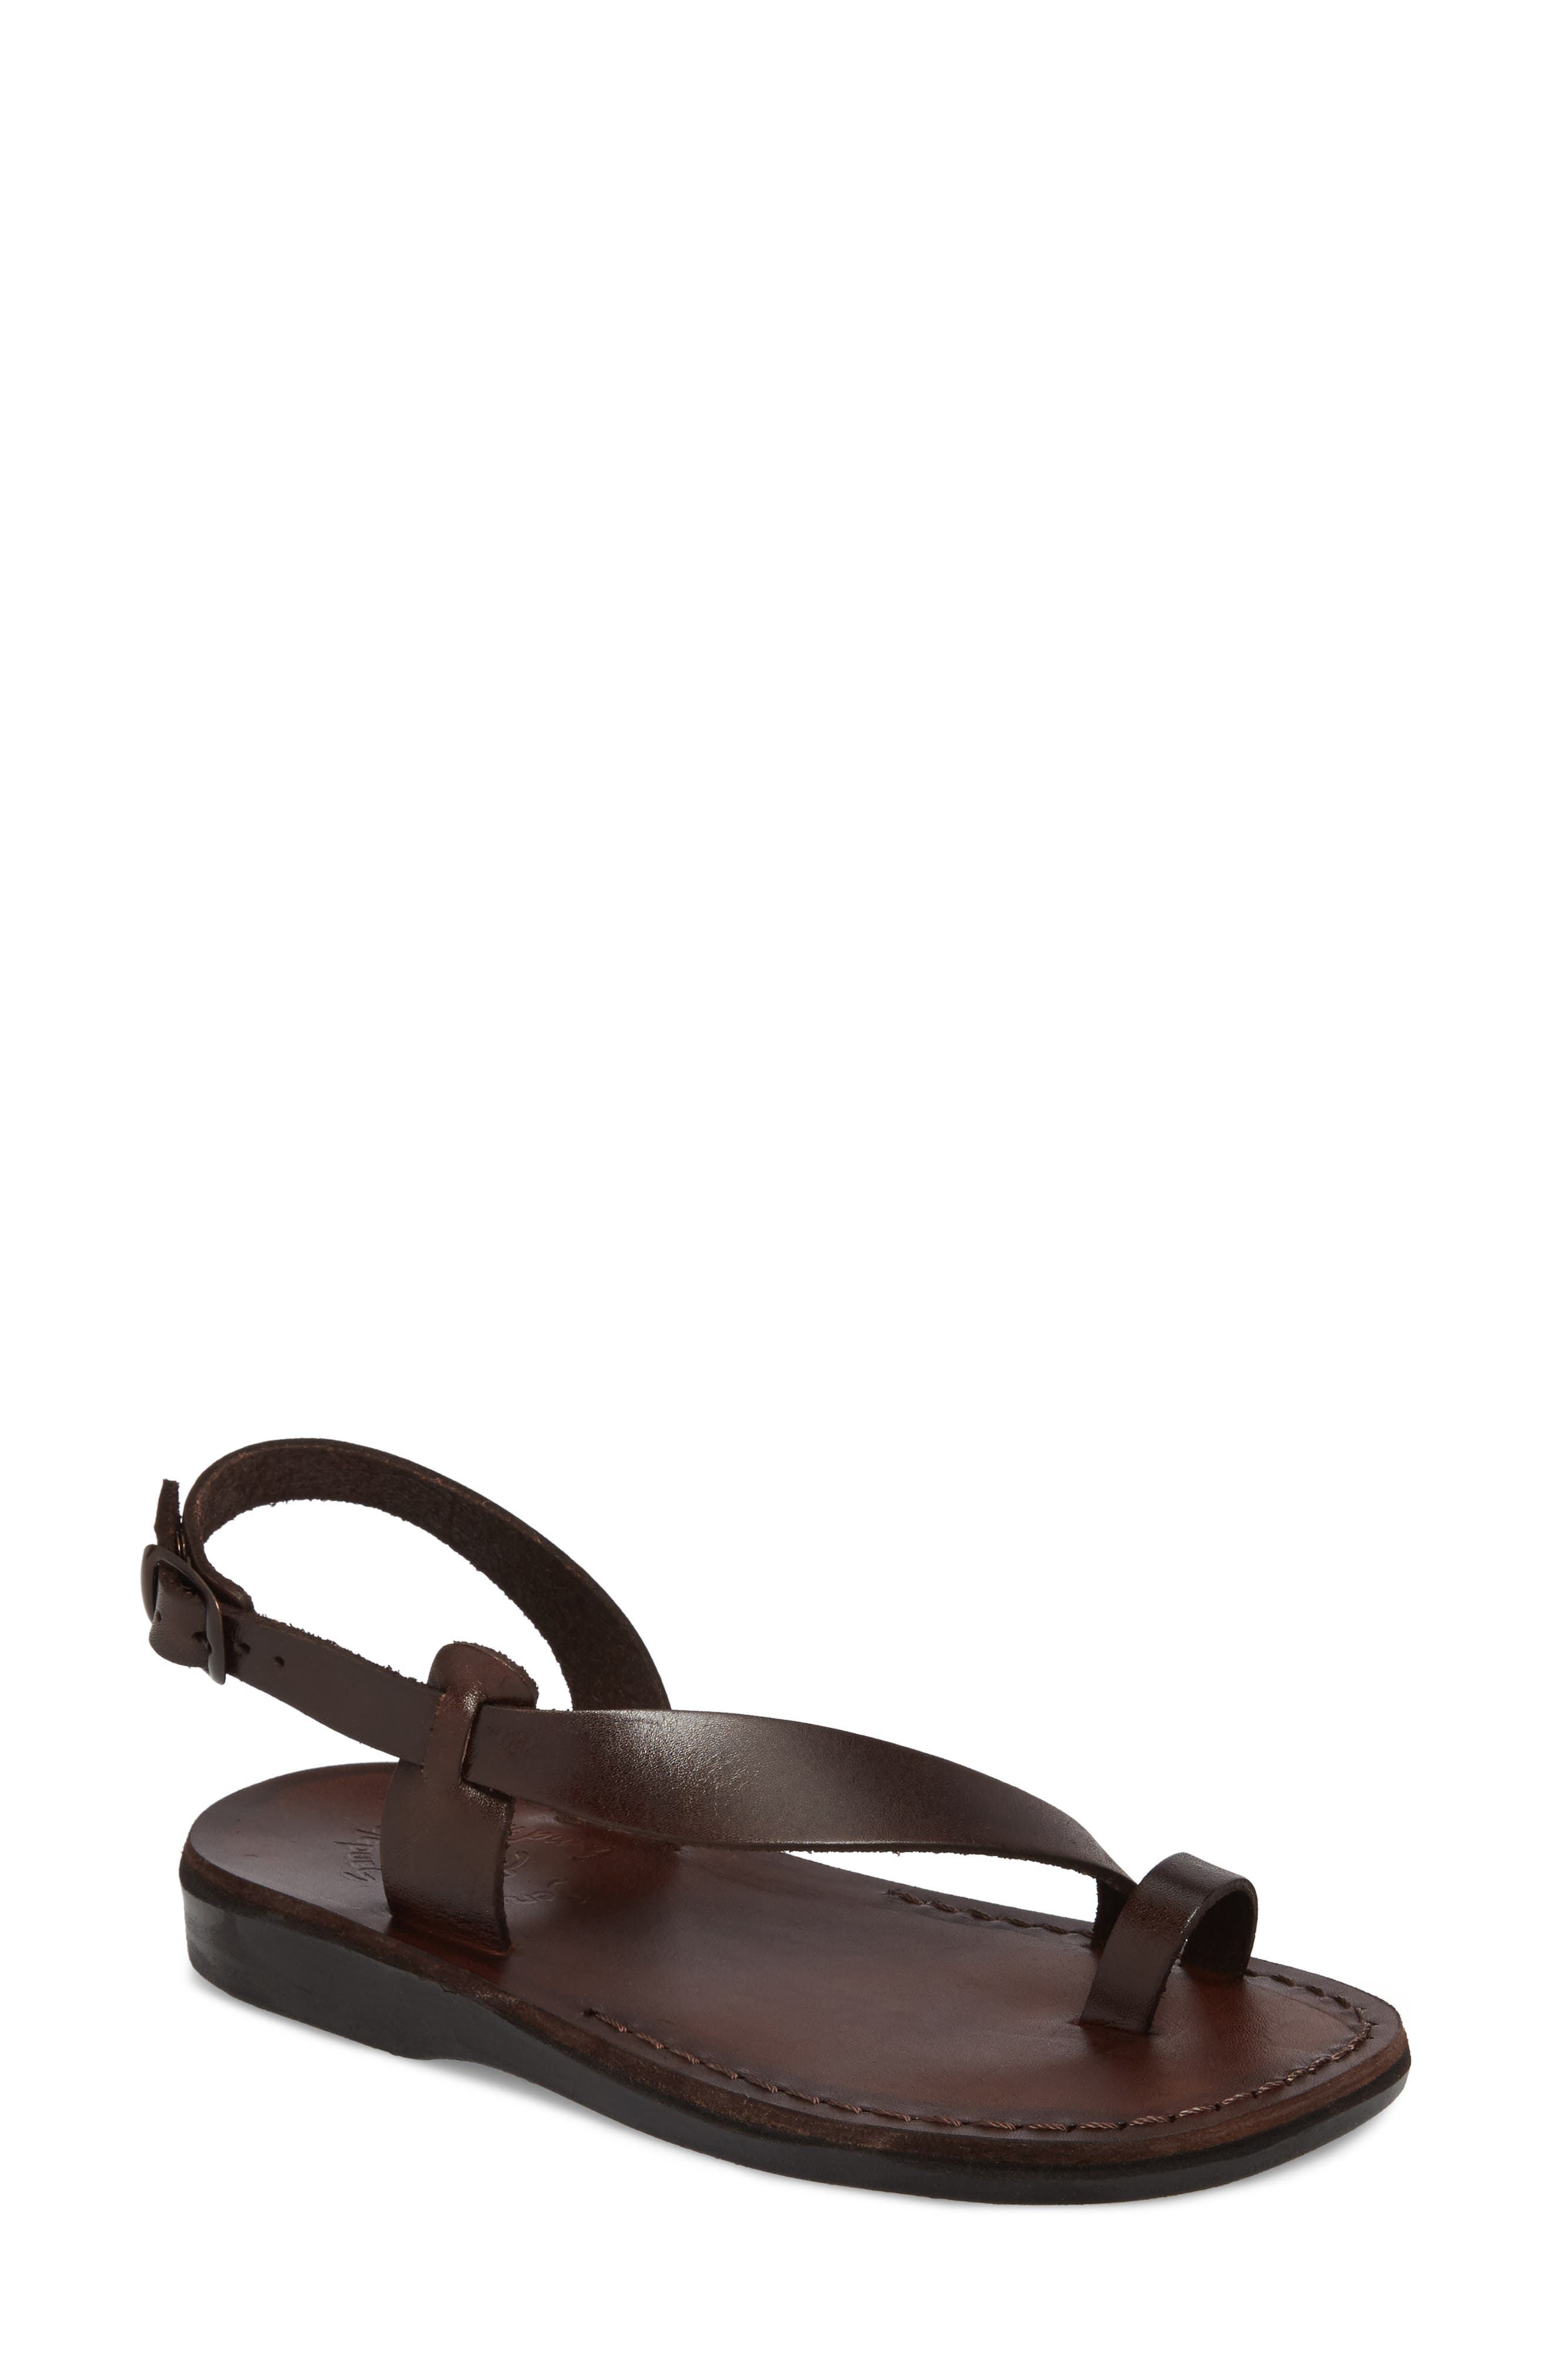 Mia Sandal,                             Main thumbnail 1, color,                             Brown Leather